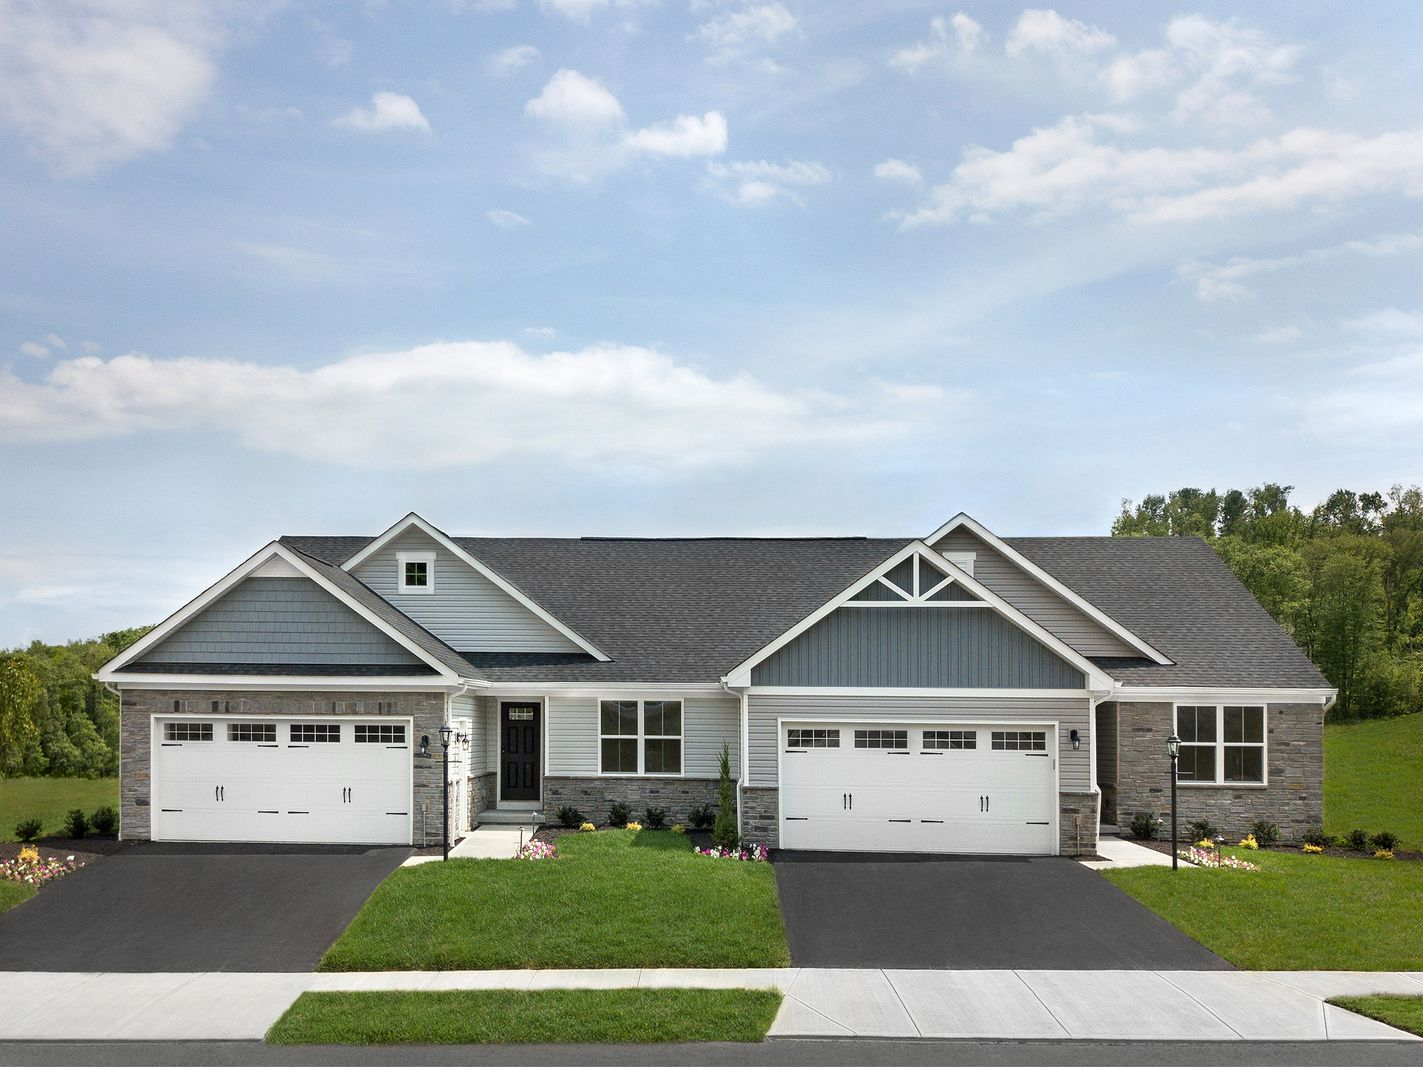 WELCOME TO TWIN LAKE VILLAS - COMING SOON TO LOCUST GROVE FROM THE LOW $300S:55+ Active Adult community conveniently located between Culpeper & Fredericksburg. Enjoy this enclave of main-level living villas perfect for the next stage in life!Join the VIP List today.